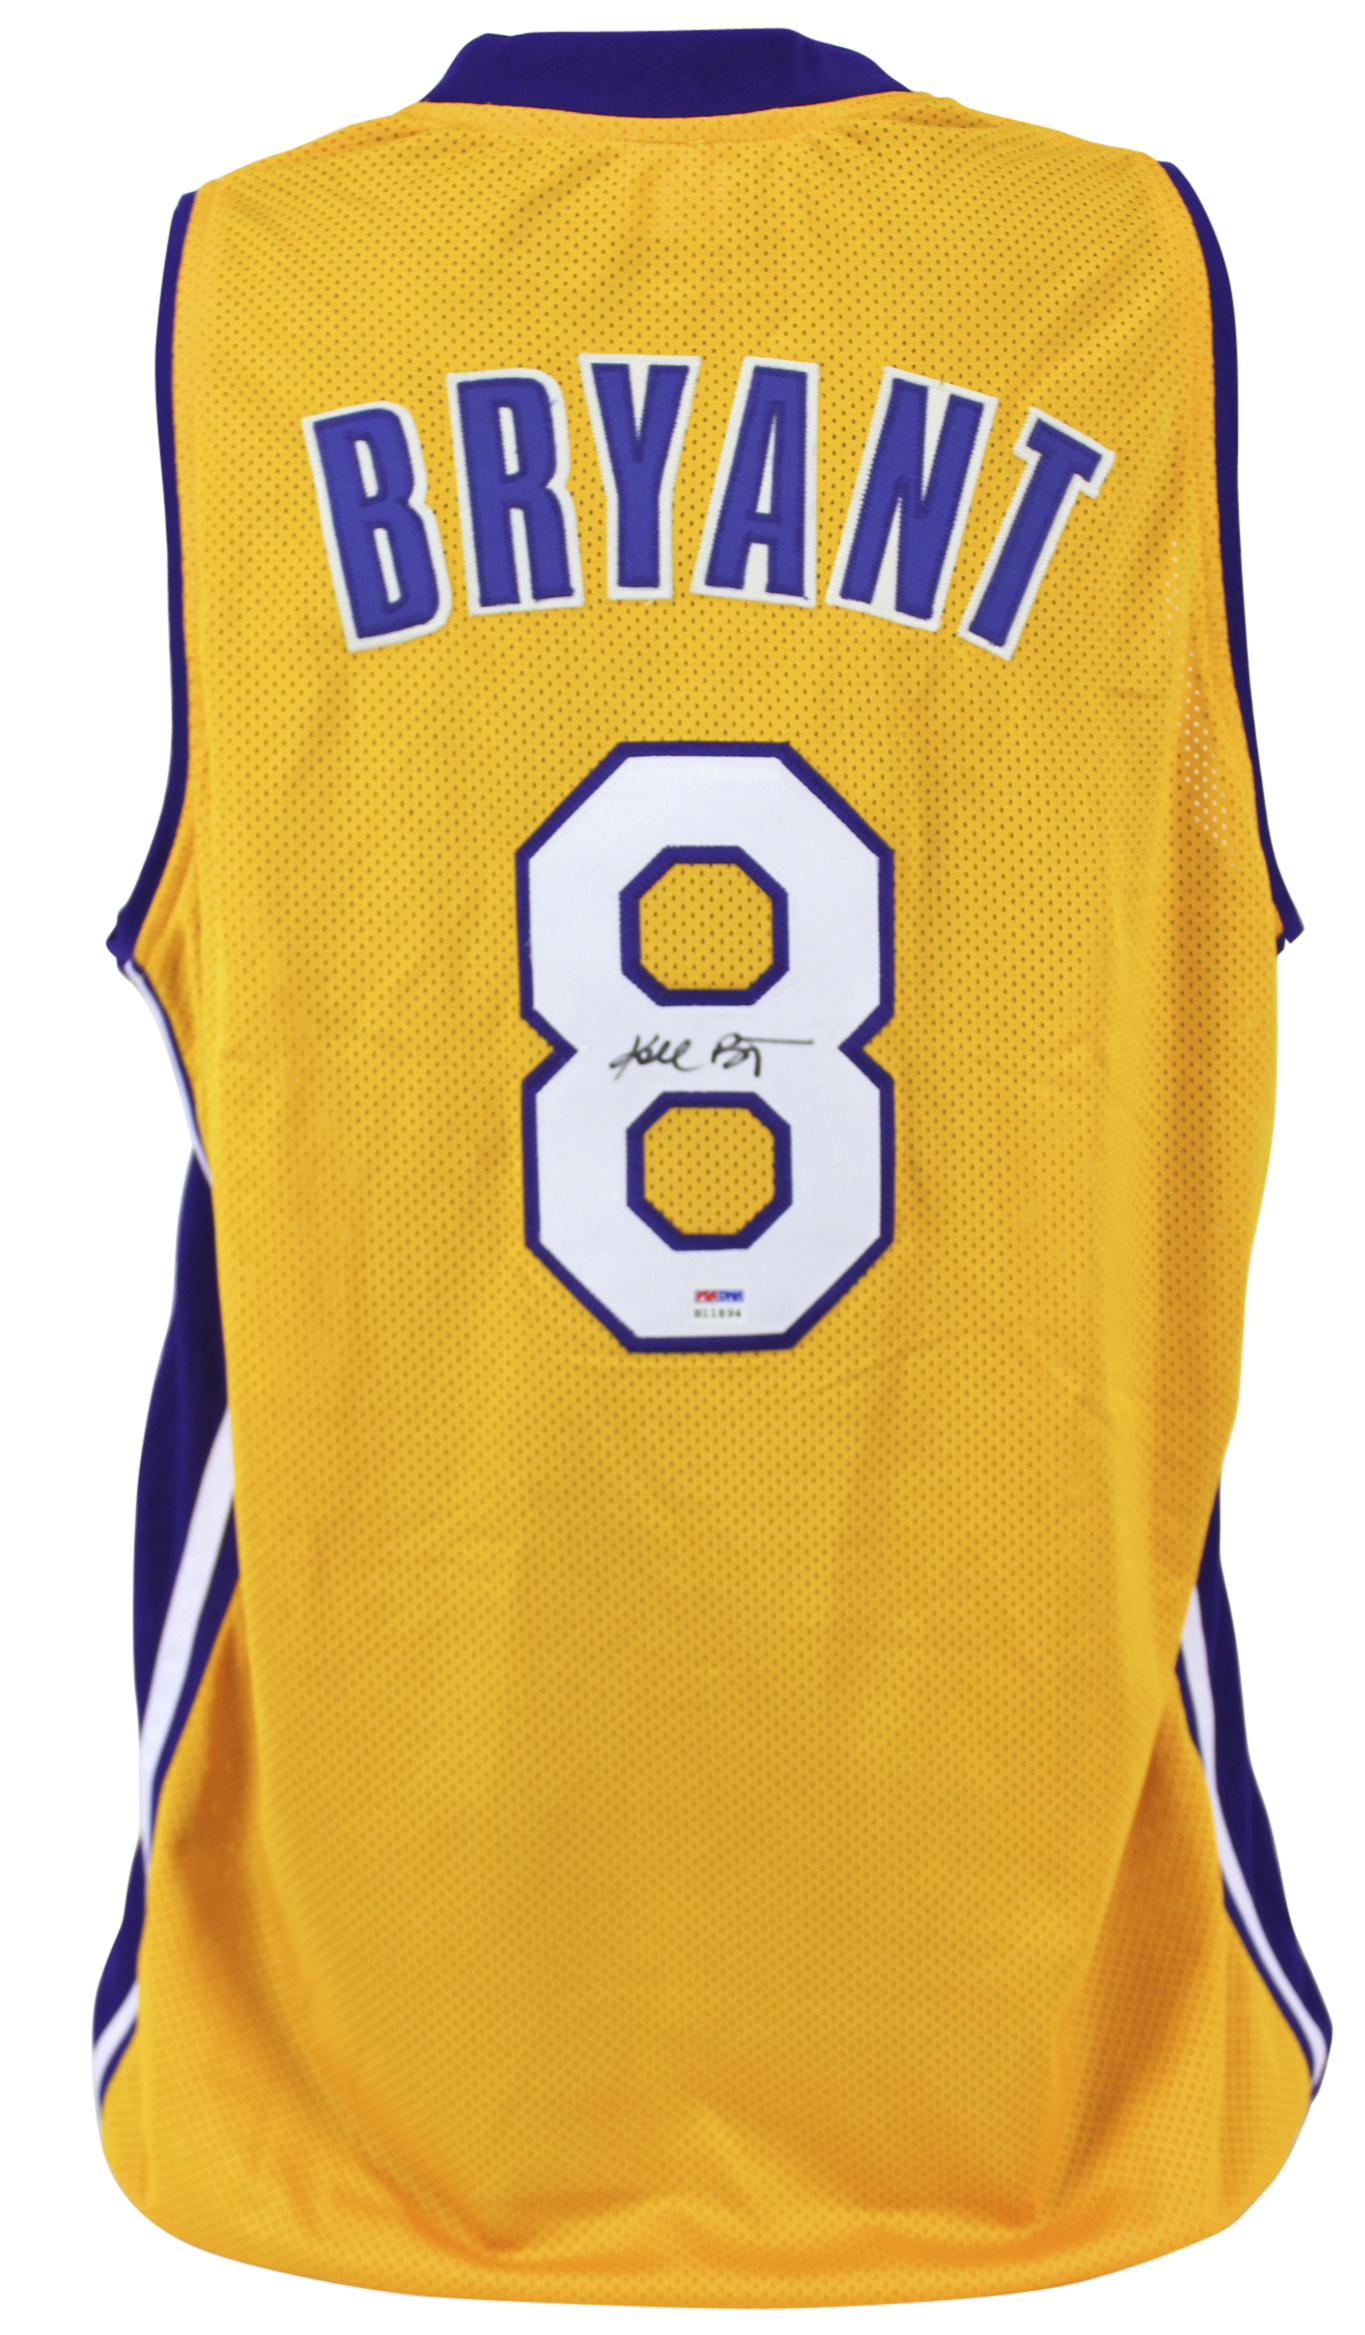 c5d8e6d376a Details about Lakers Kobe Bryant Authentic Signed Yellow Jersey Rookie  Signature PSA  B11894